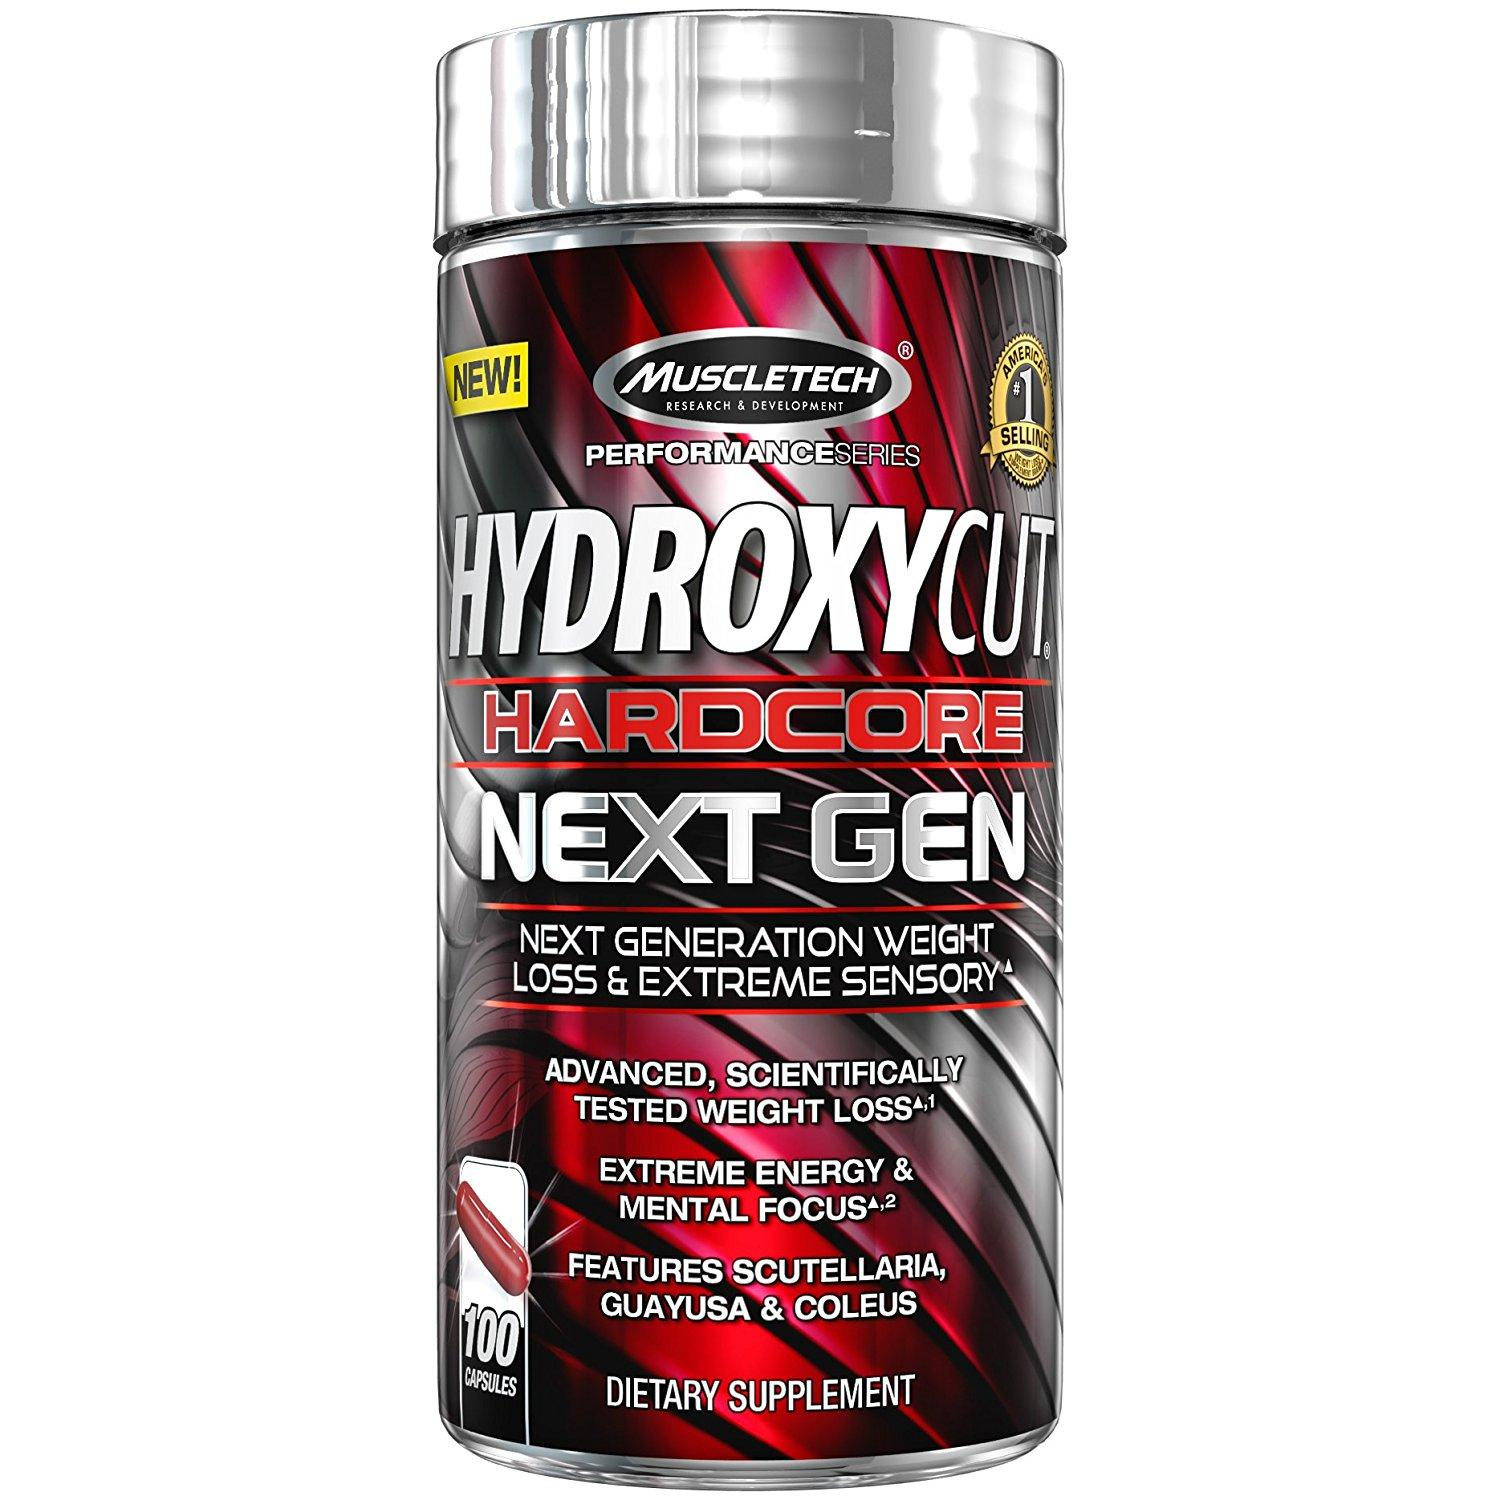 Muscletech Hydroxycut Hardcore Next Gen Capsules Bottle Of 100 By Supplyments.